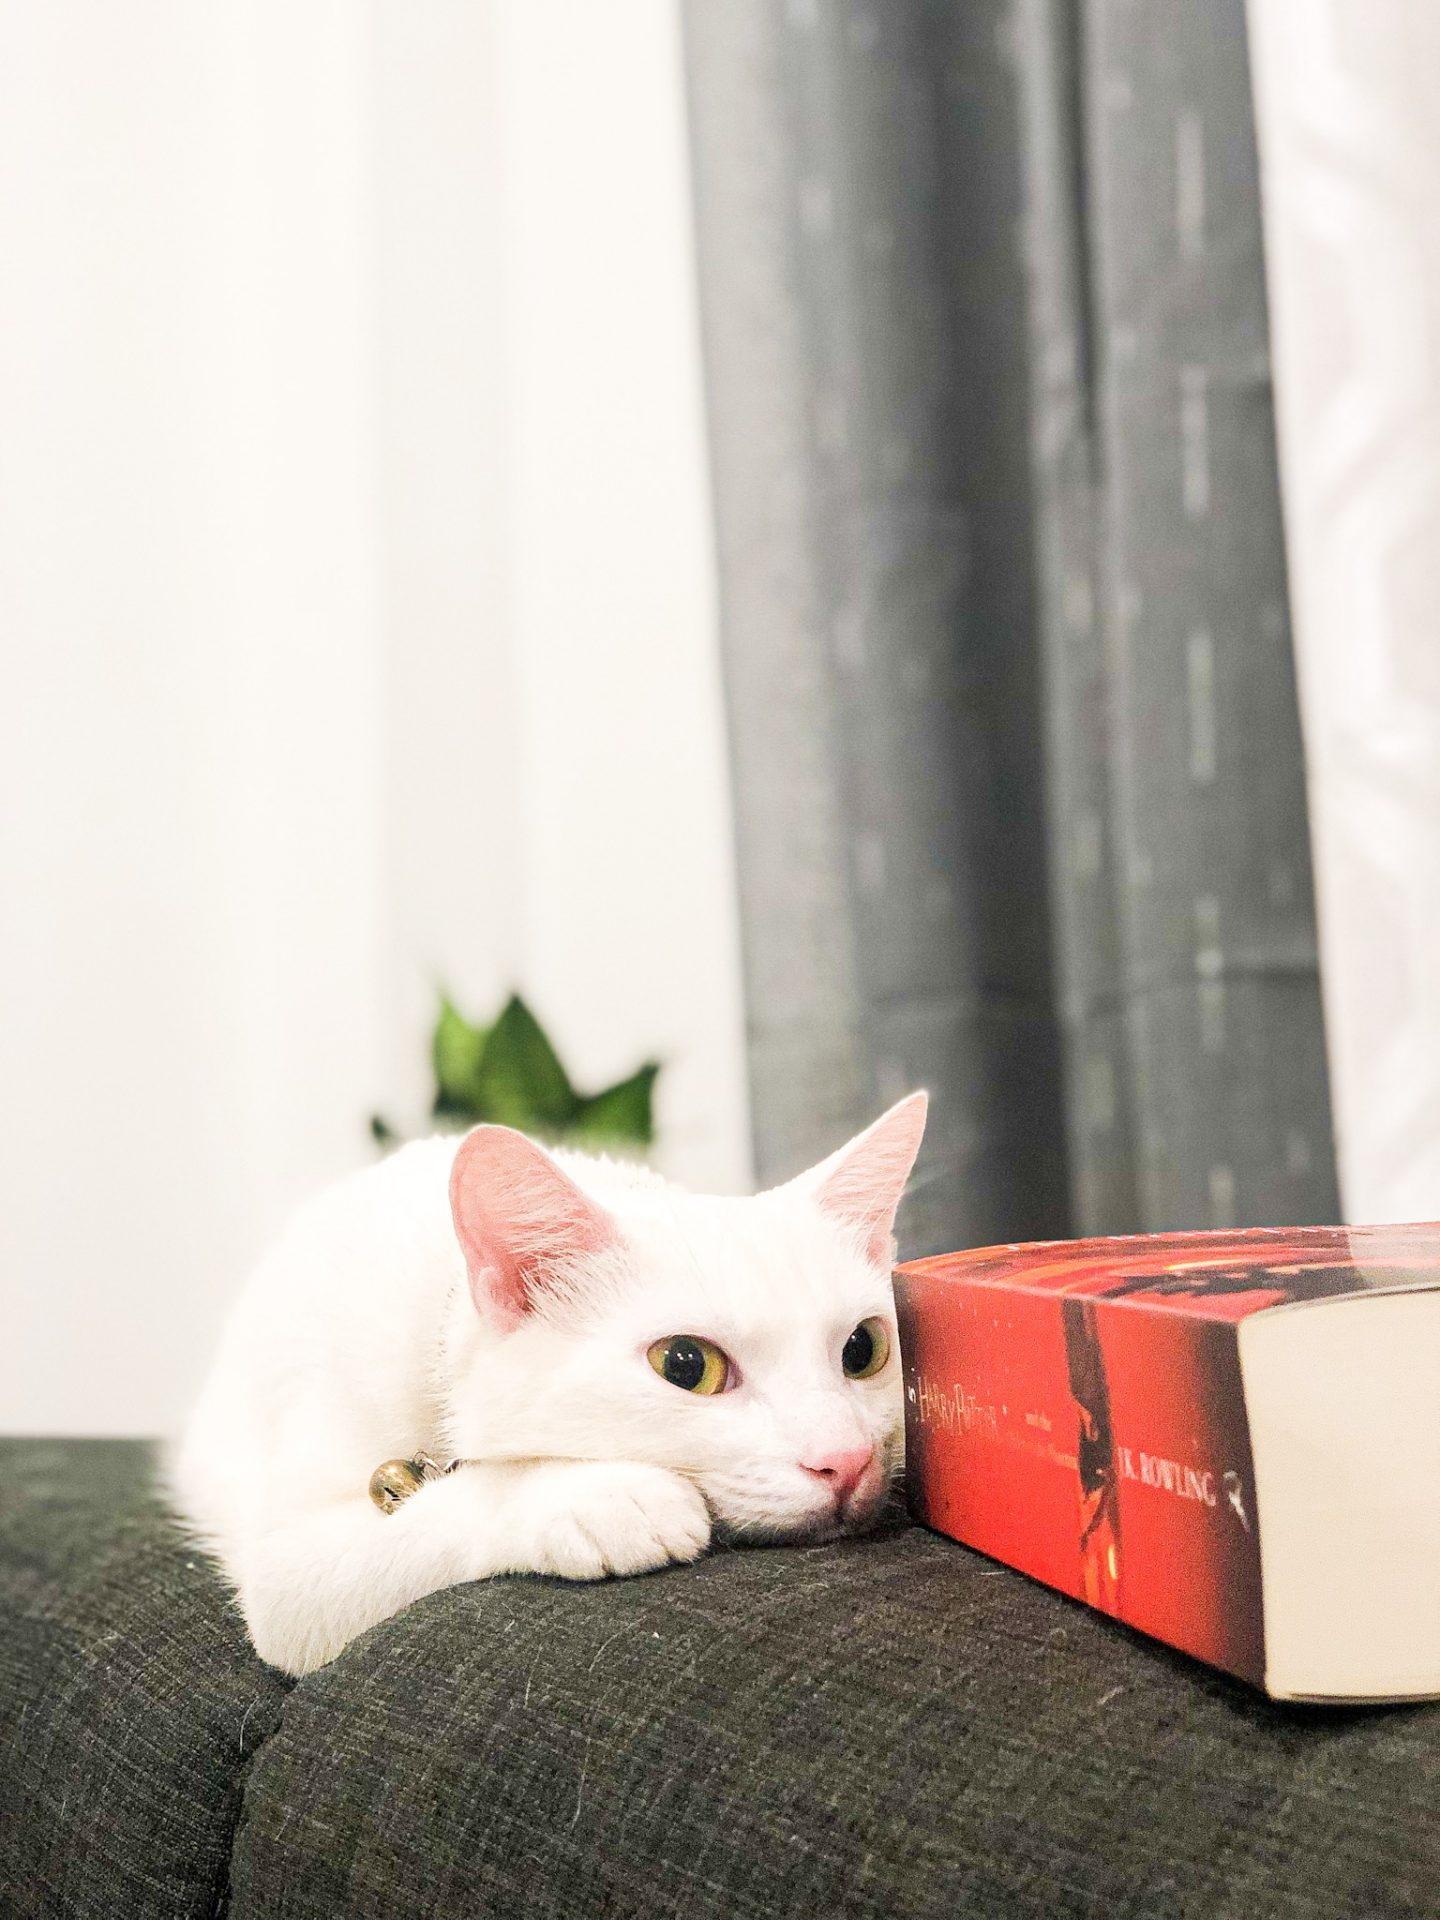 Cats and books image